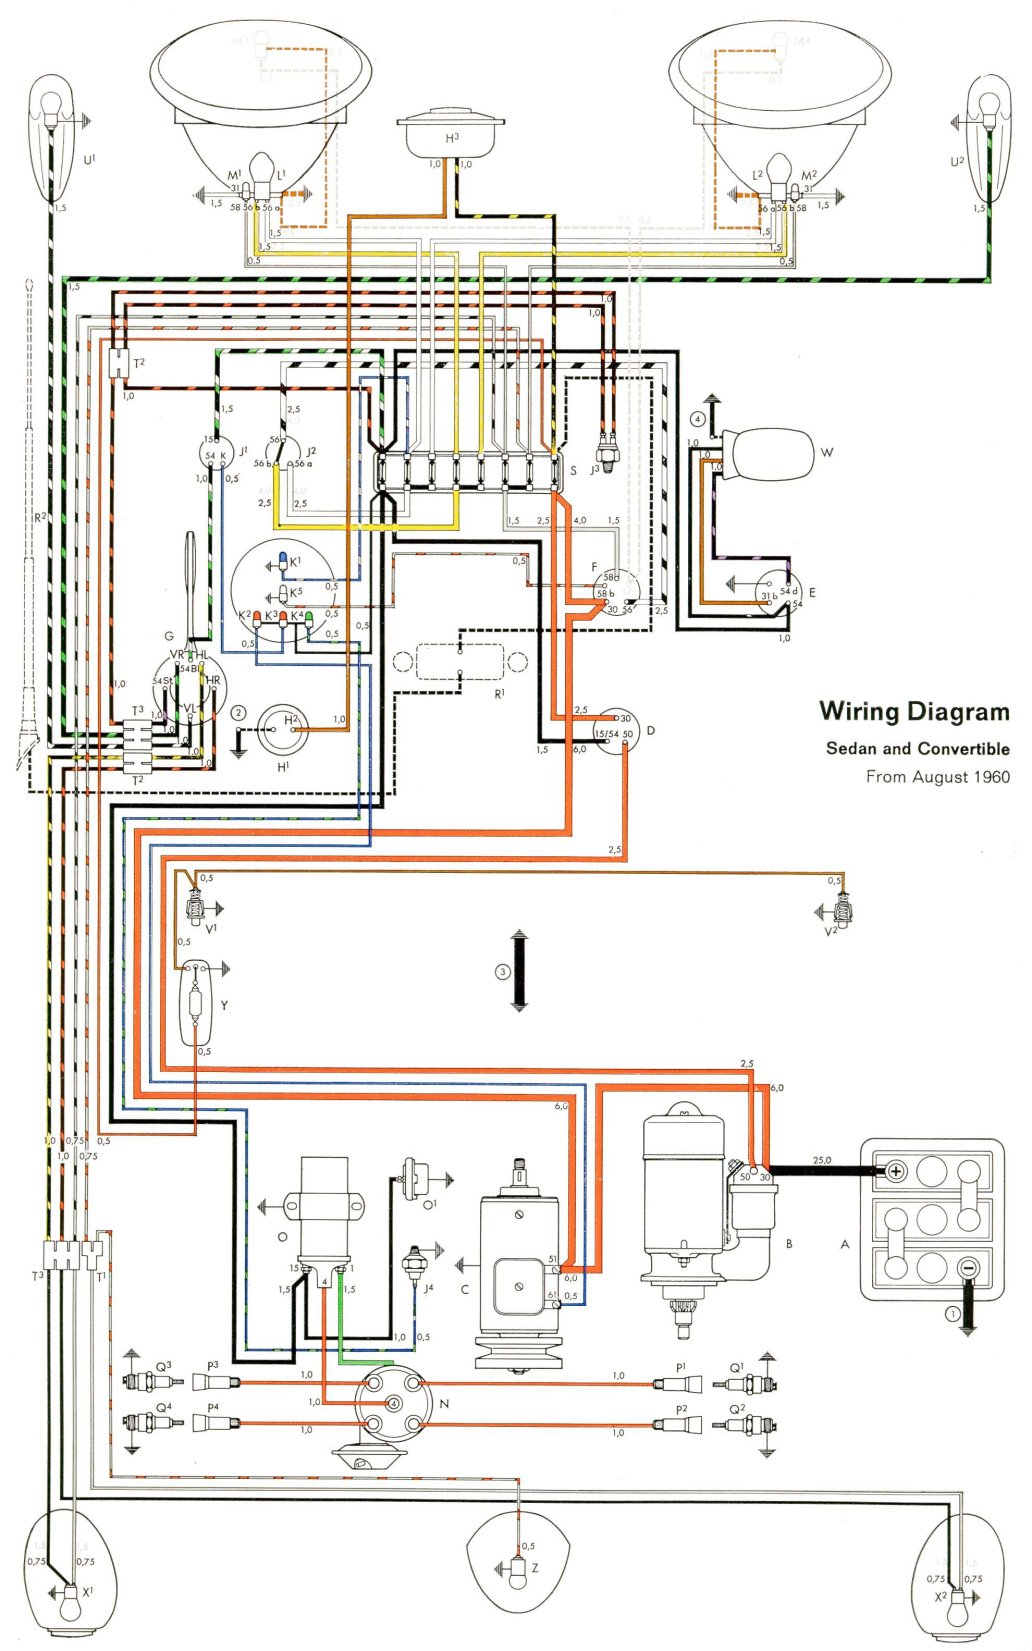 1965 bug wiring diagram